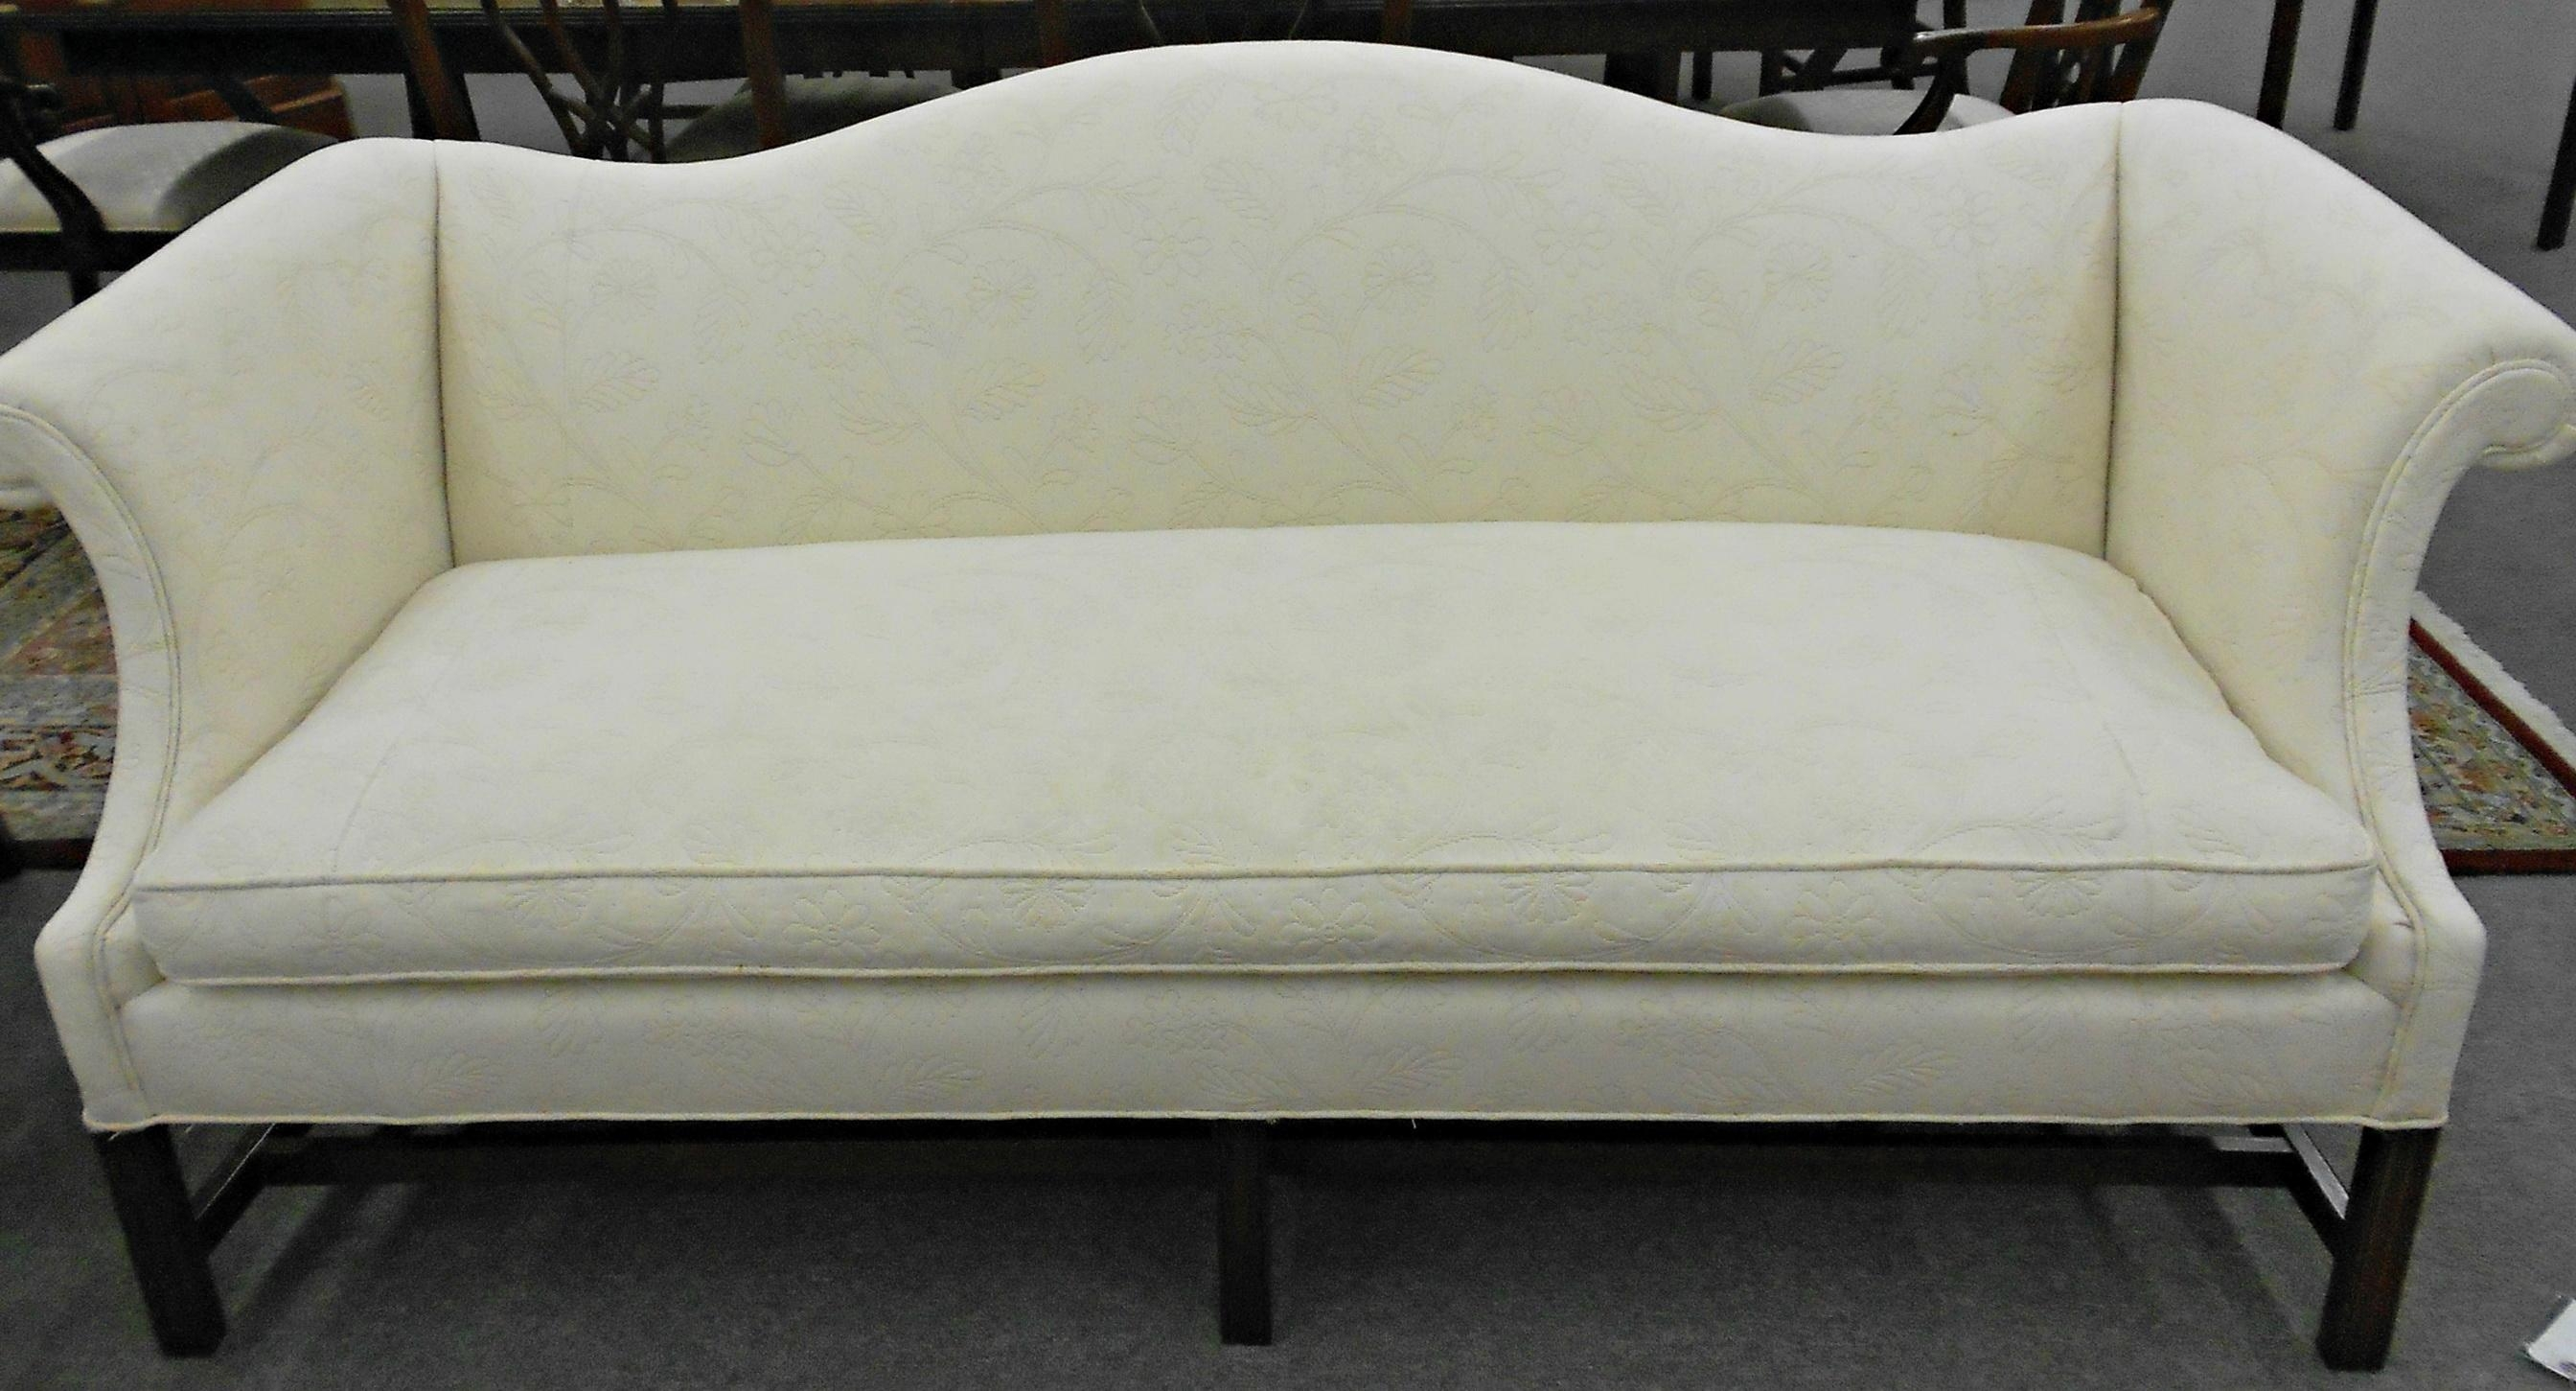 Sofas Center : Sofa White Camel Back Couch Beautiful Slipcover For Inside Camelback Sofa Slipcovers (View 8 of 19)